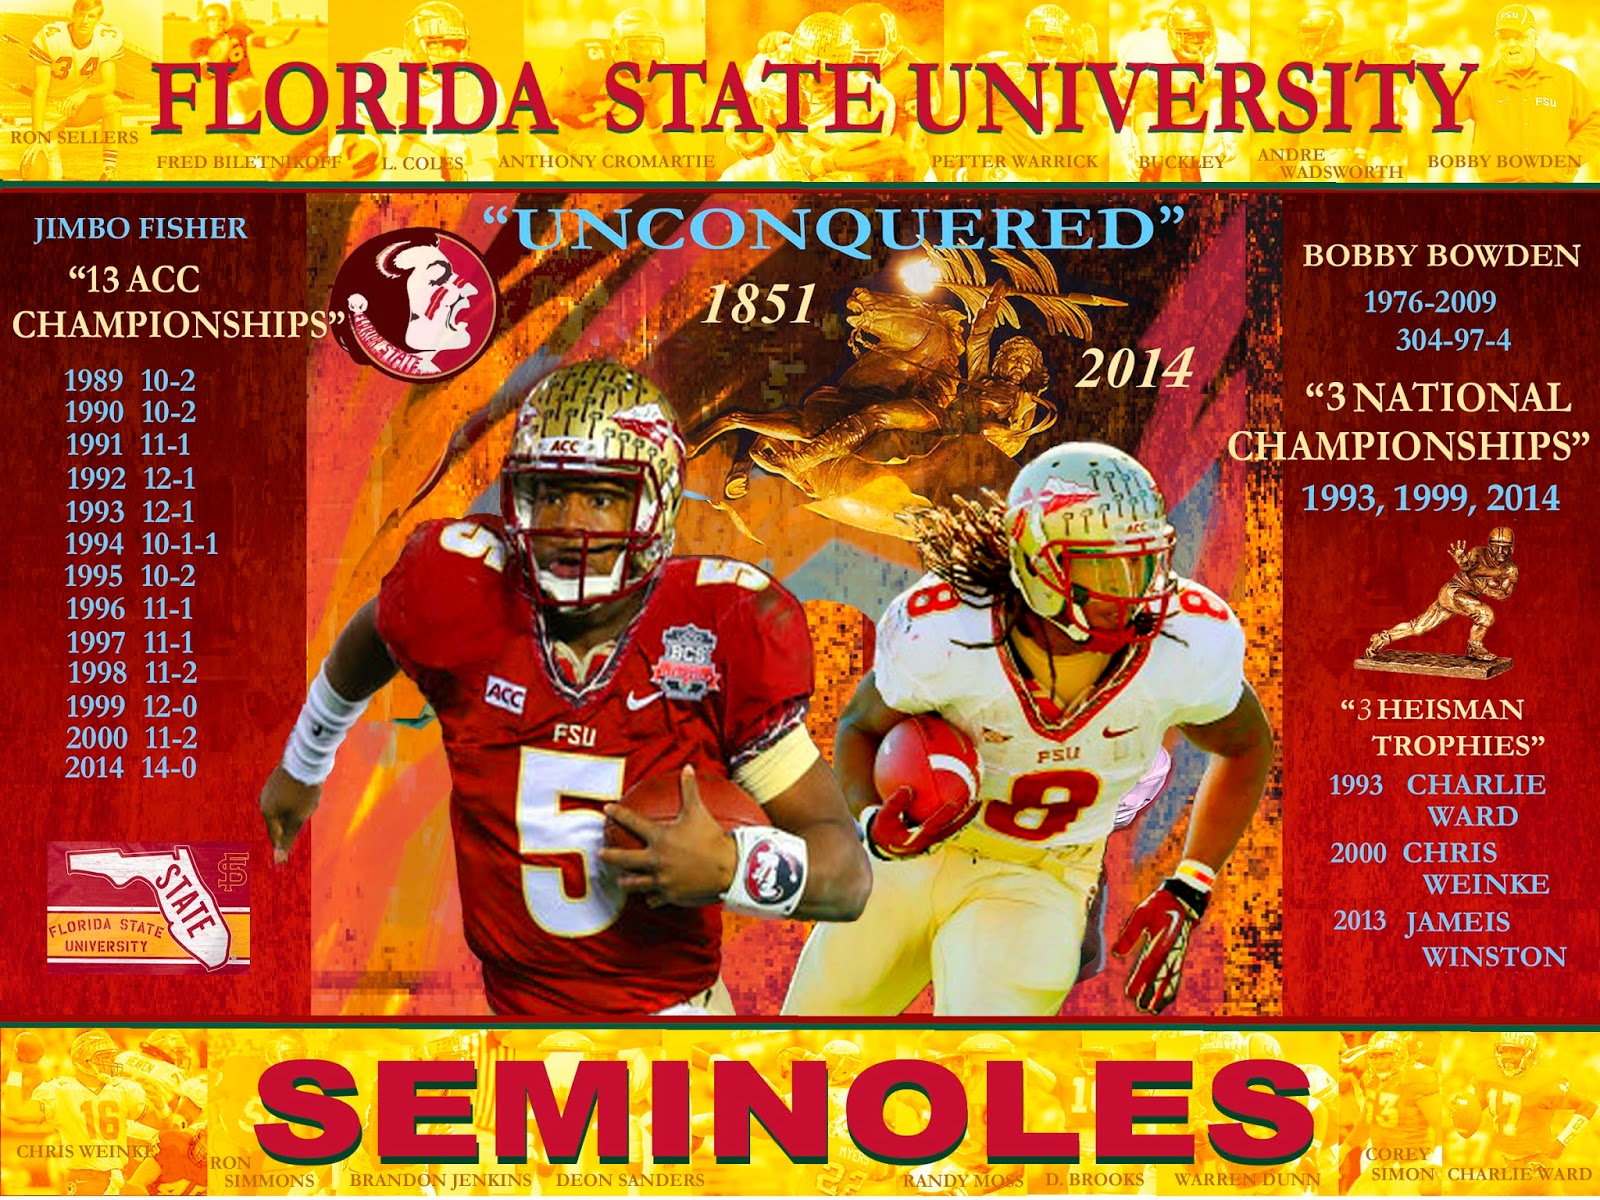 art of h edward brooks Florida State Seminoles 2014 National Champs 1600x1200